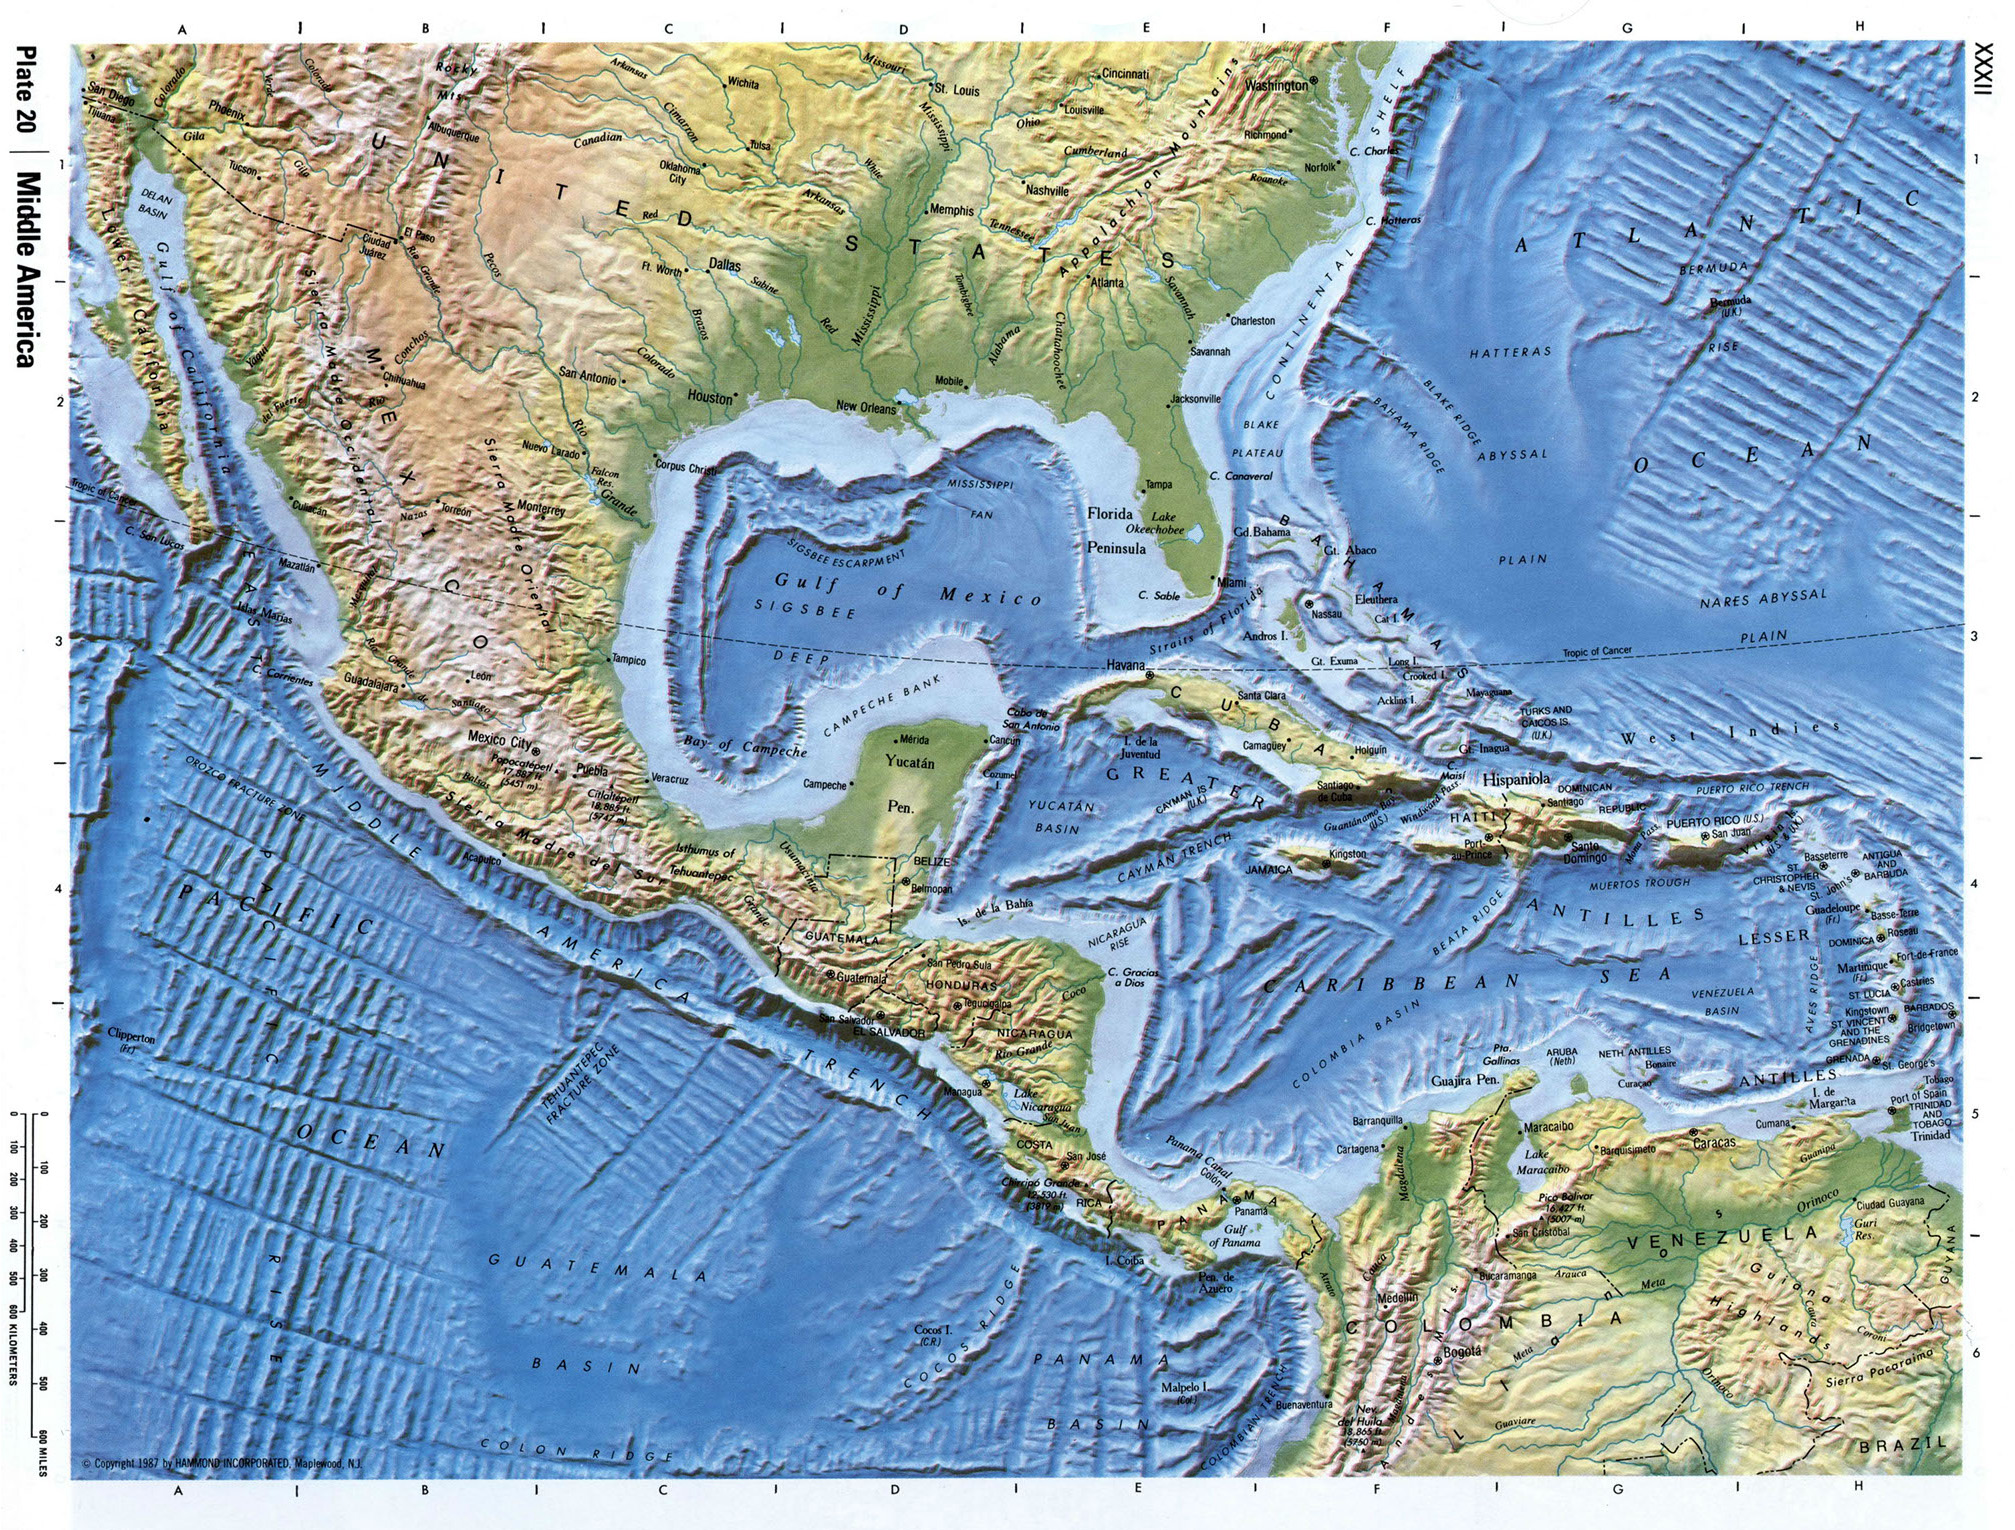 Political Map Of Central America And The Caribbean%0A Maps of North America and North American countries Political